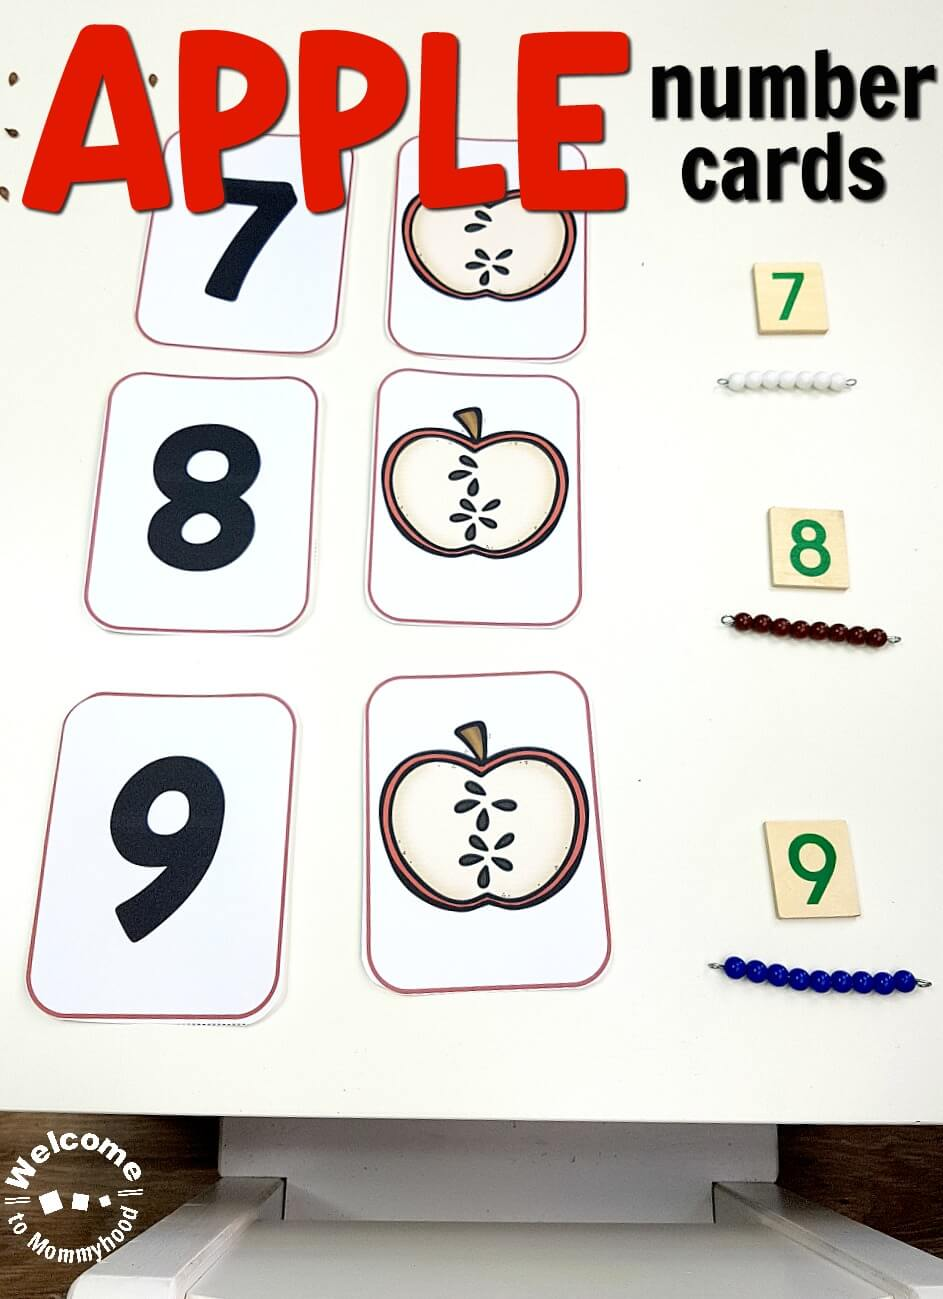 Use these apple number cards to teach your students number order and number quantity. Perfect for preschool math centers or Montessori activities. #preschoolactivities #montessori